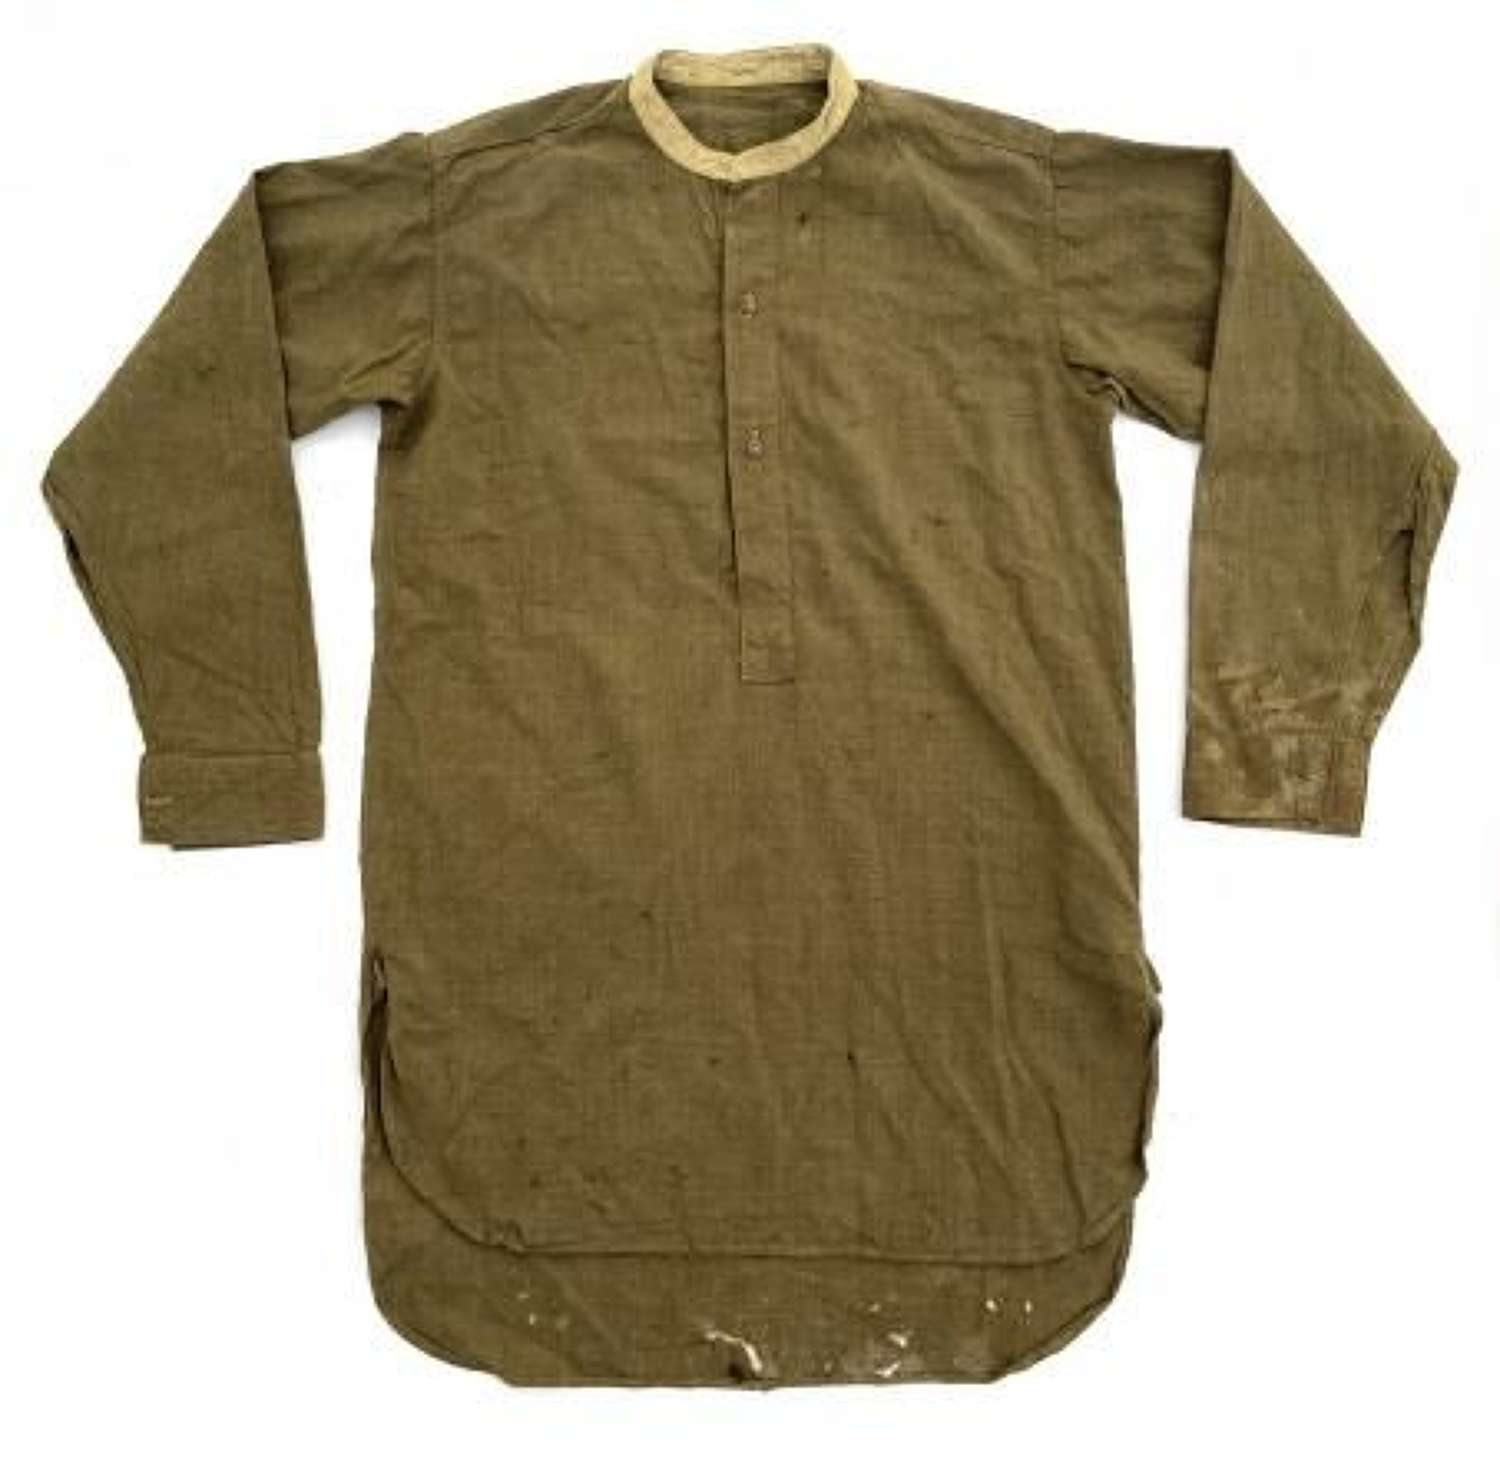 Original WW2 British Army Officers Collarless Shirt - Distressed